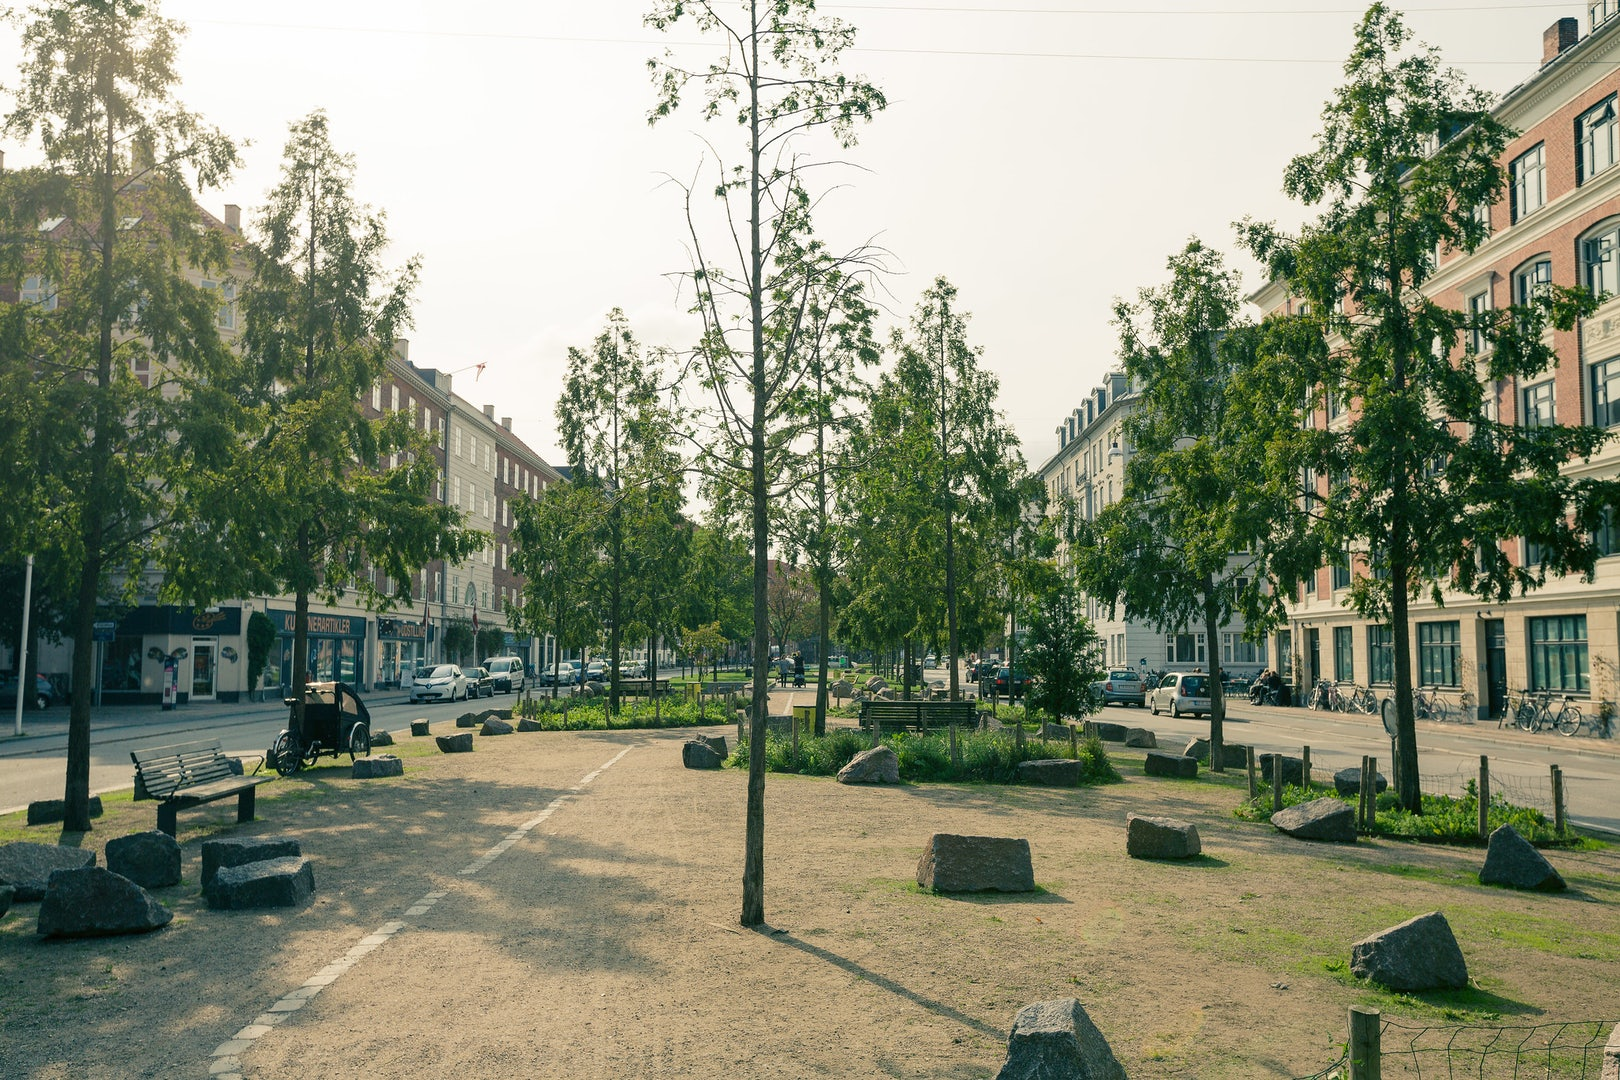 Sønder Boulevard during a sunny day